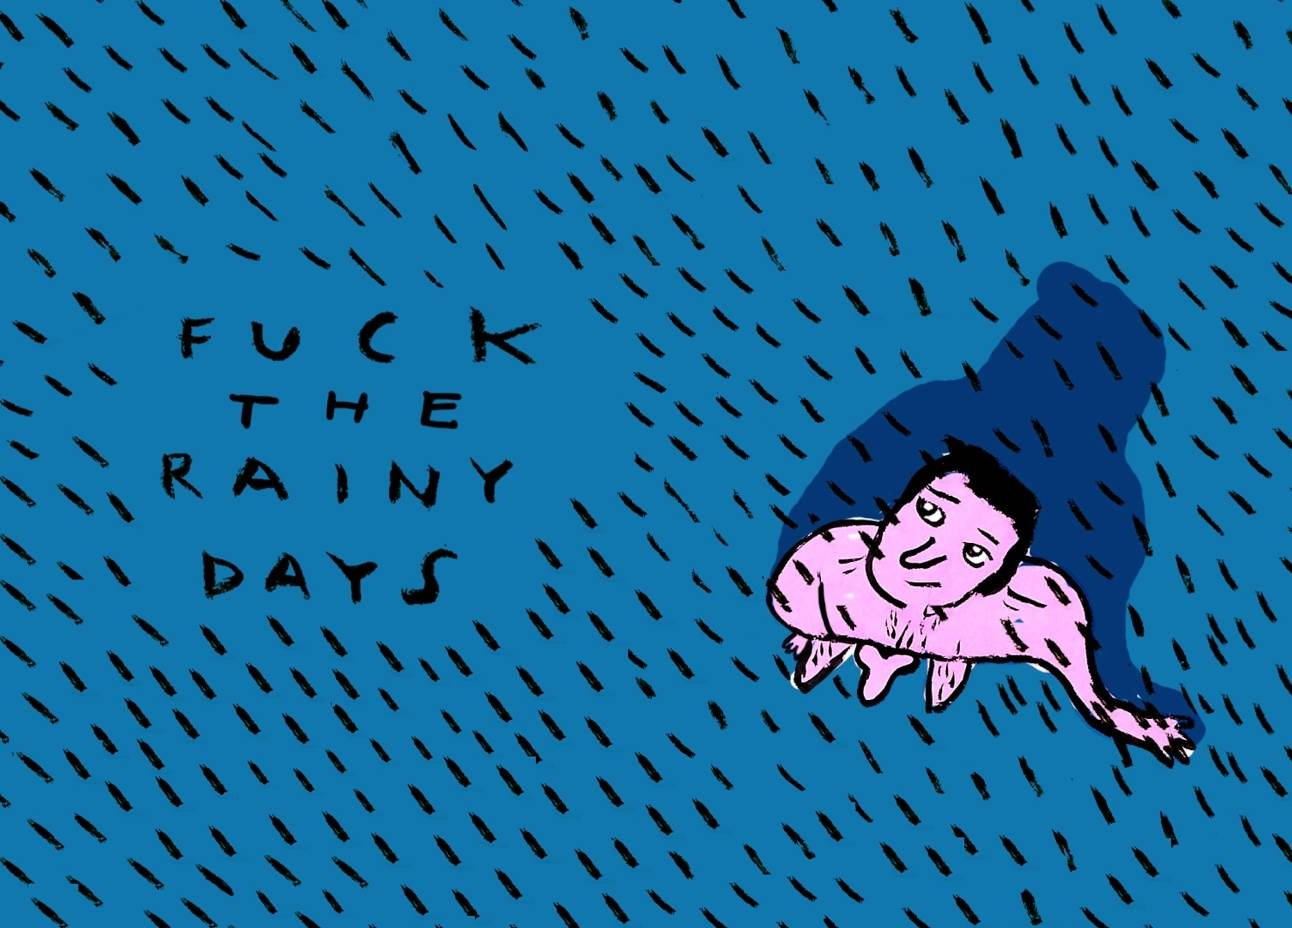 Rainy days, original Body Printing Drawing and Illustration by Shut Up  Claudia